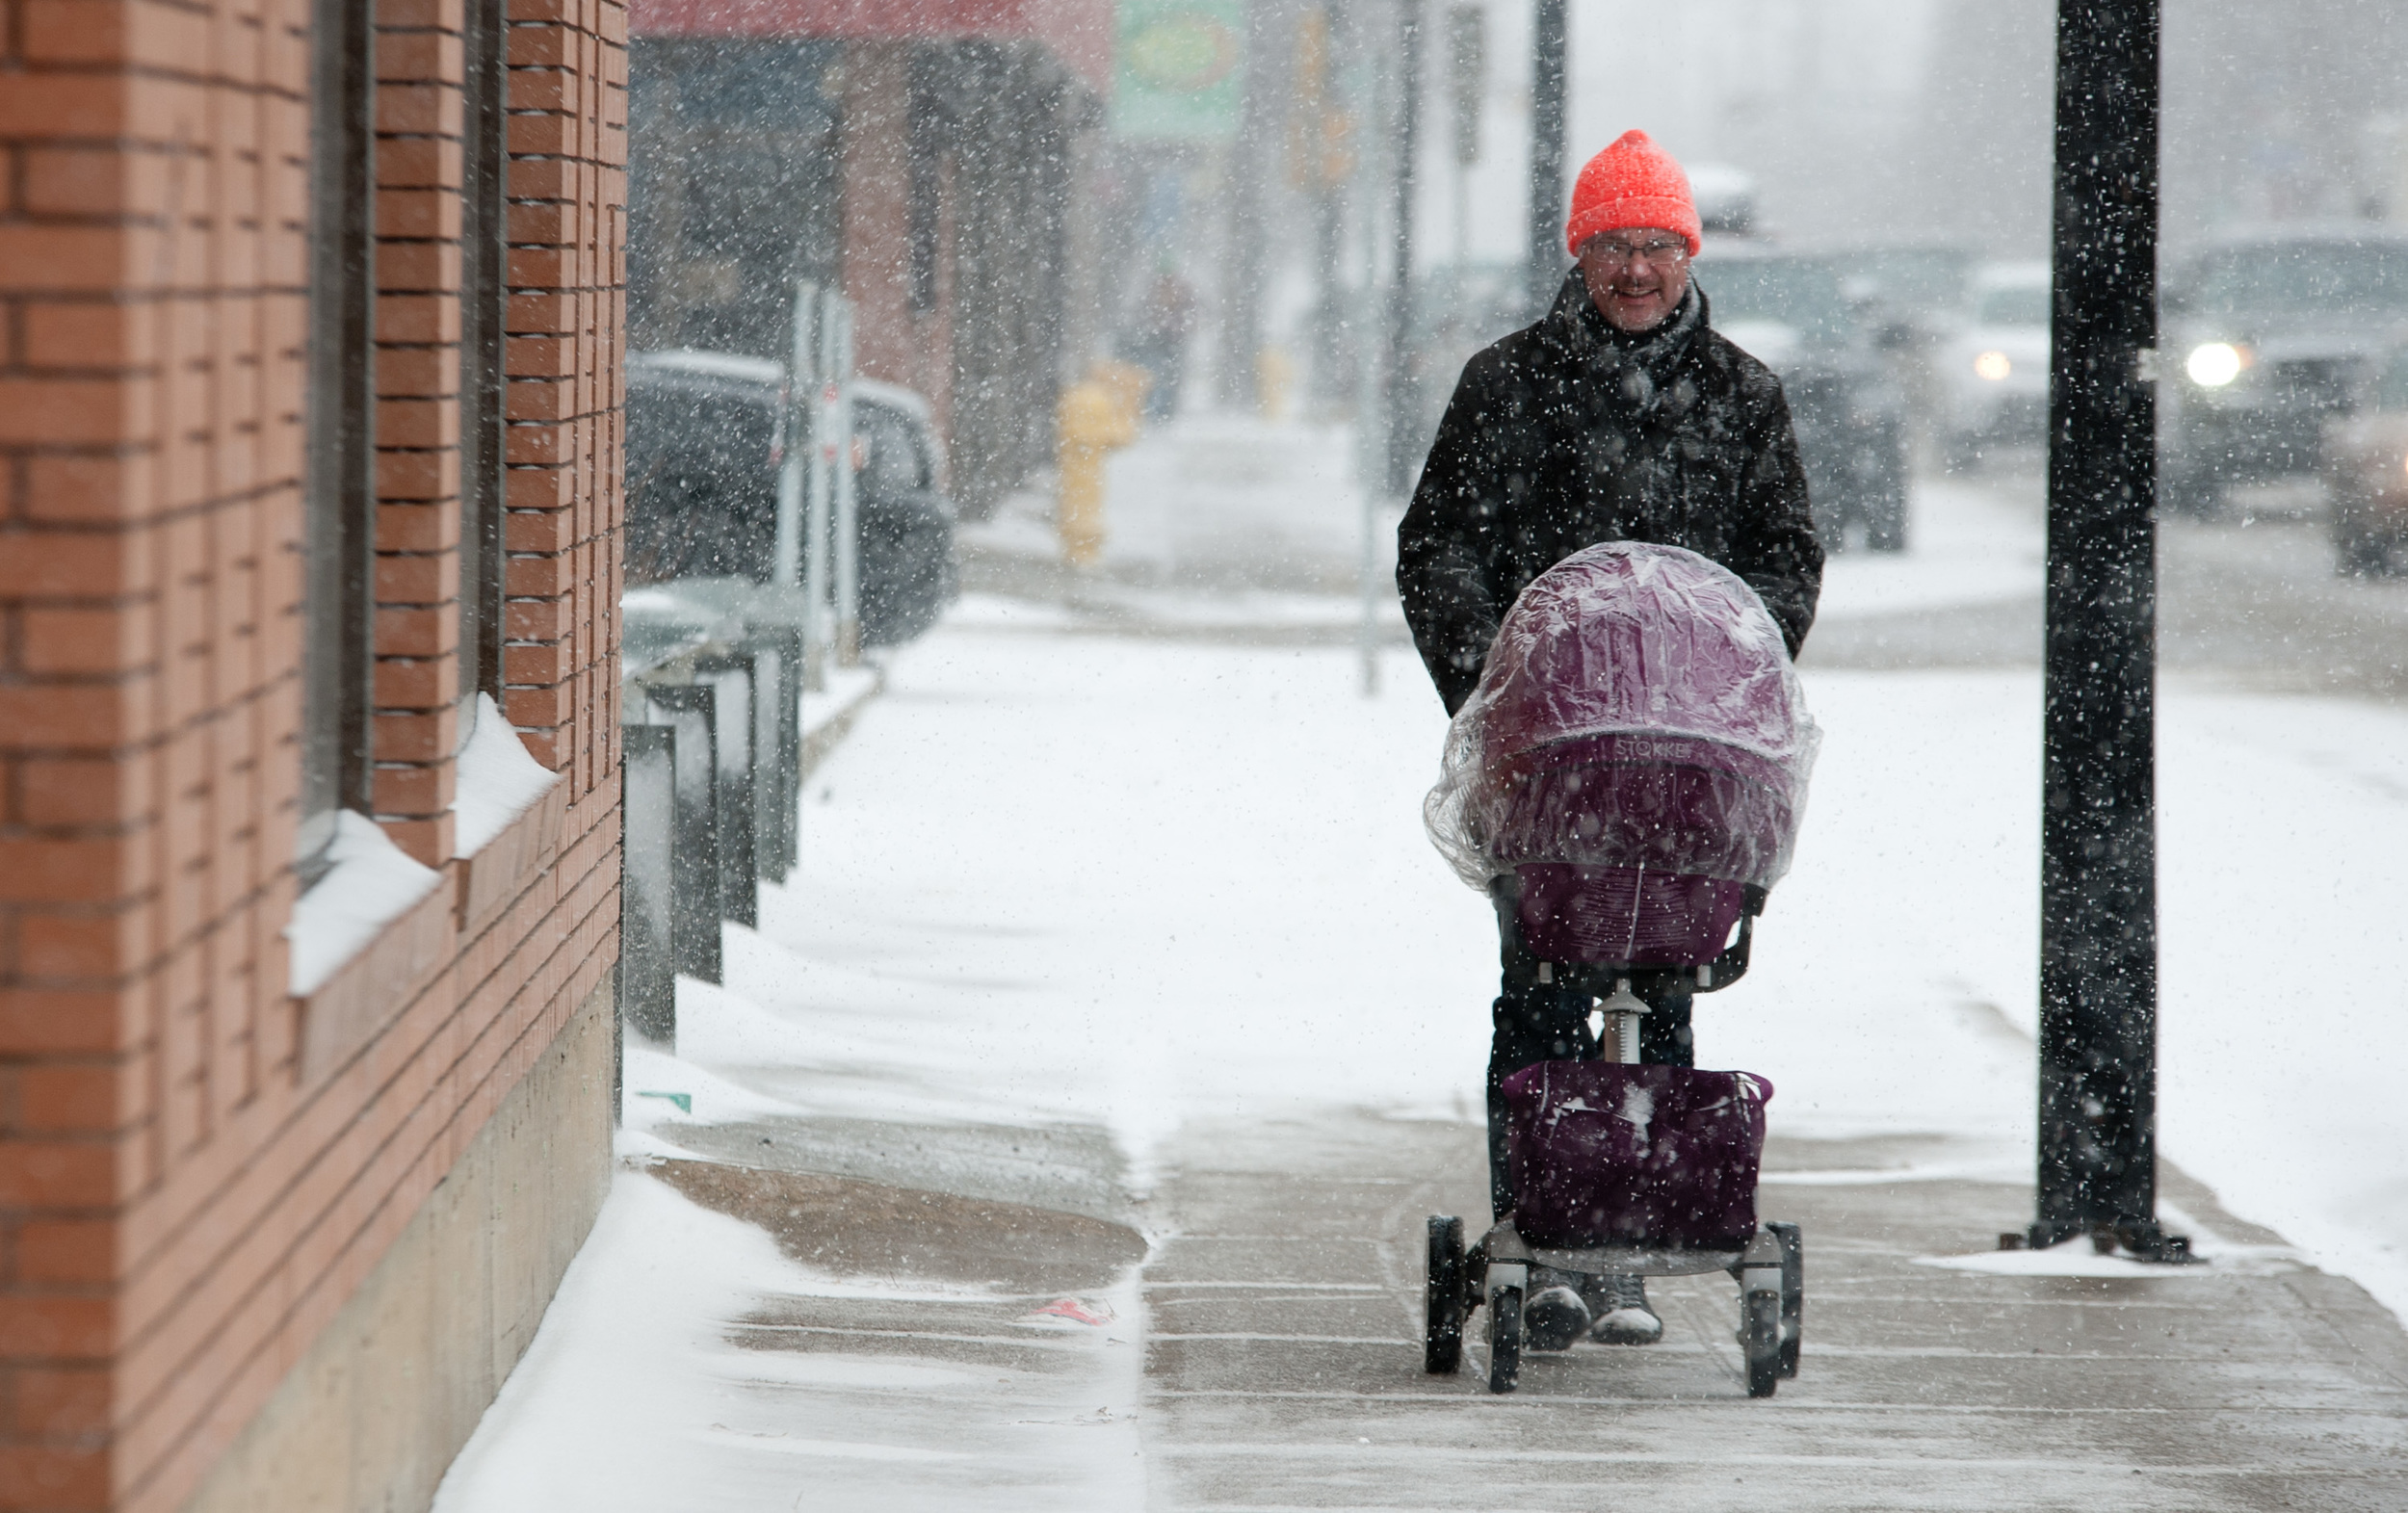 Weather features are a thing, and the last gasp of winter was felt pretty heavily in Lloyd. I went downtown and found this guy out with his stroller, and this was the best shot out of the set. I later found out he was heavily Norwegian and was visiting his daughter who now works in Lloydminster. He was taking his granddaughter out for a walk. Classy Viking grandpa.